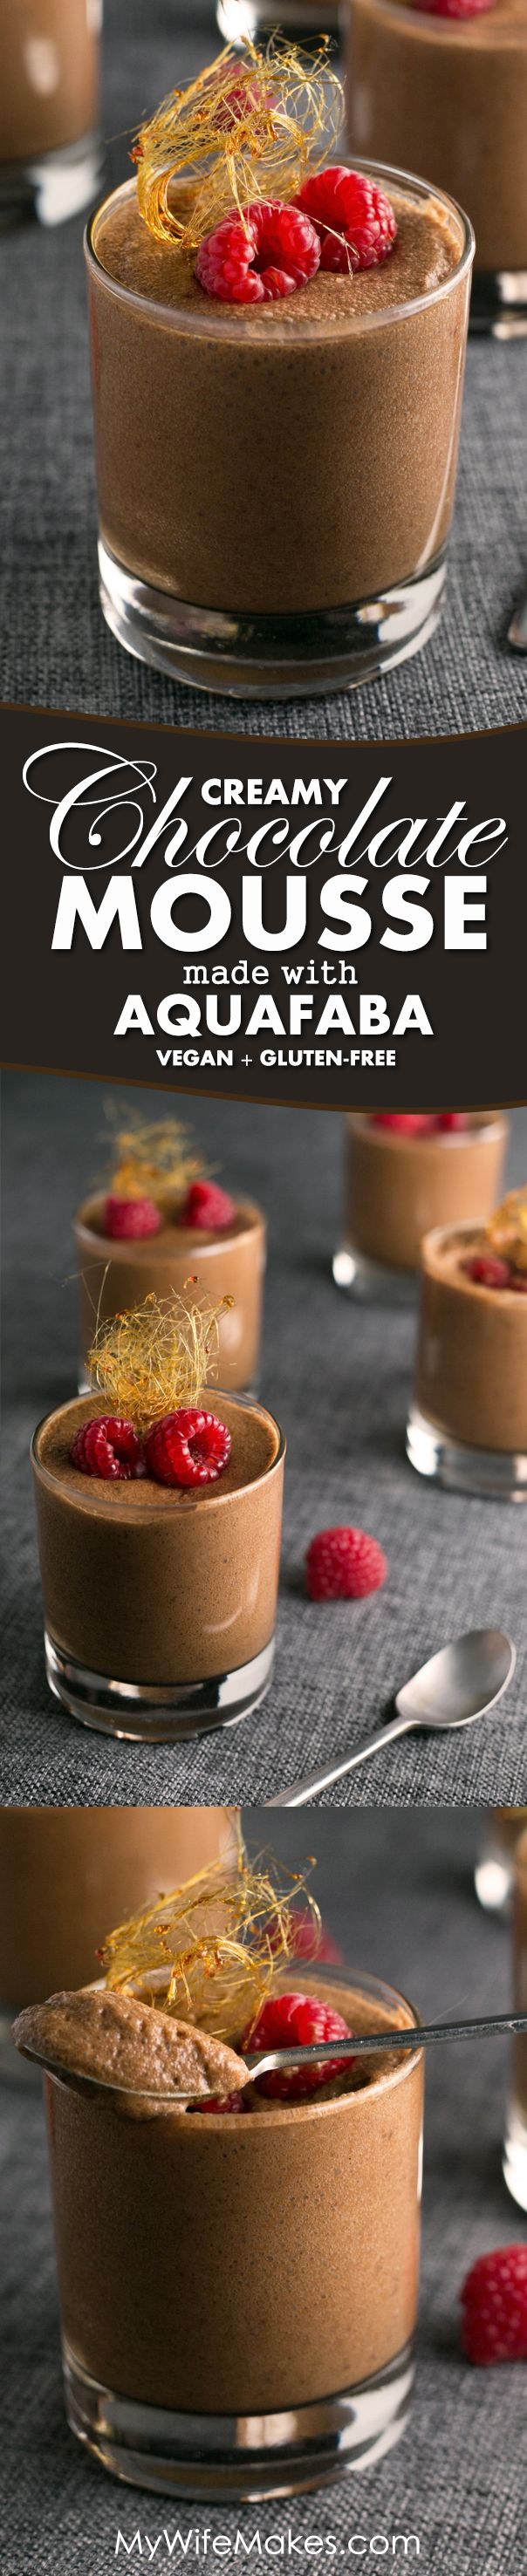 "Vegan Chocolate Mousse made with Aquafaba (Chickpea Brine) | Aquafaba, or as most regular mortals refer to as ""liquid stuff that chickpeas and beans are canned in"", used to make meringue, macarons, and all sorts of other fluffy sweets, like this Vegan Chocolate Mousse"